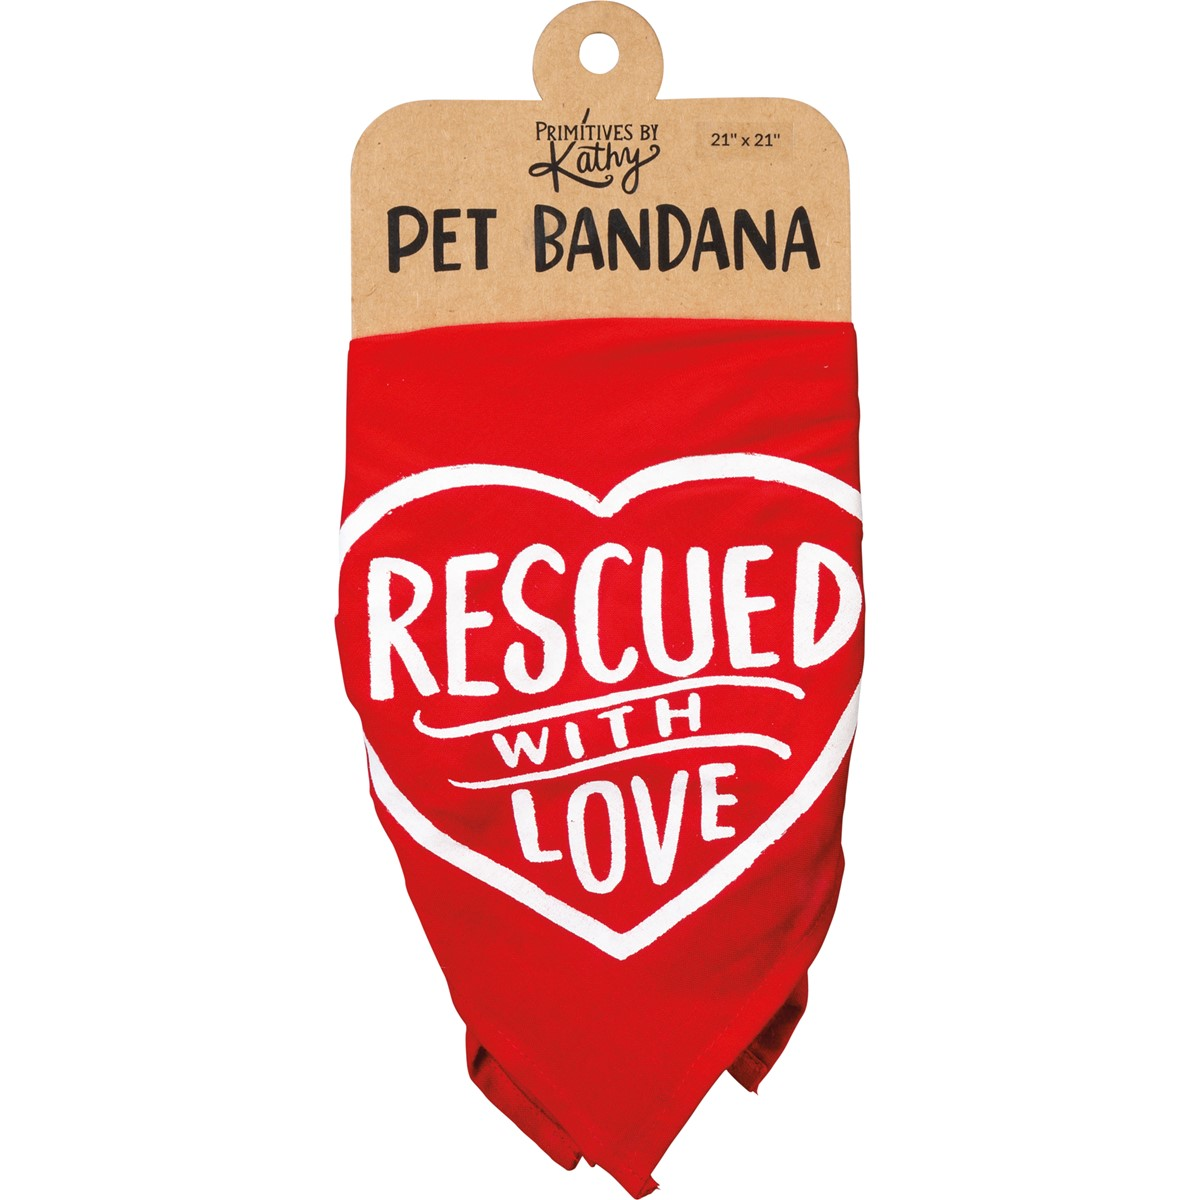 "Pet Bandana Lg - Rescued With Love - 21"" x 21"" - Rayon"